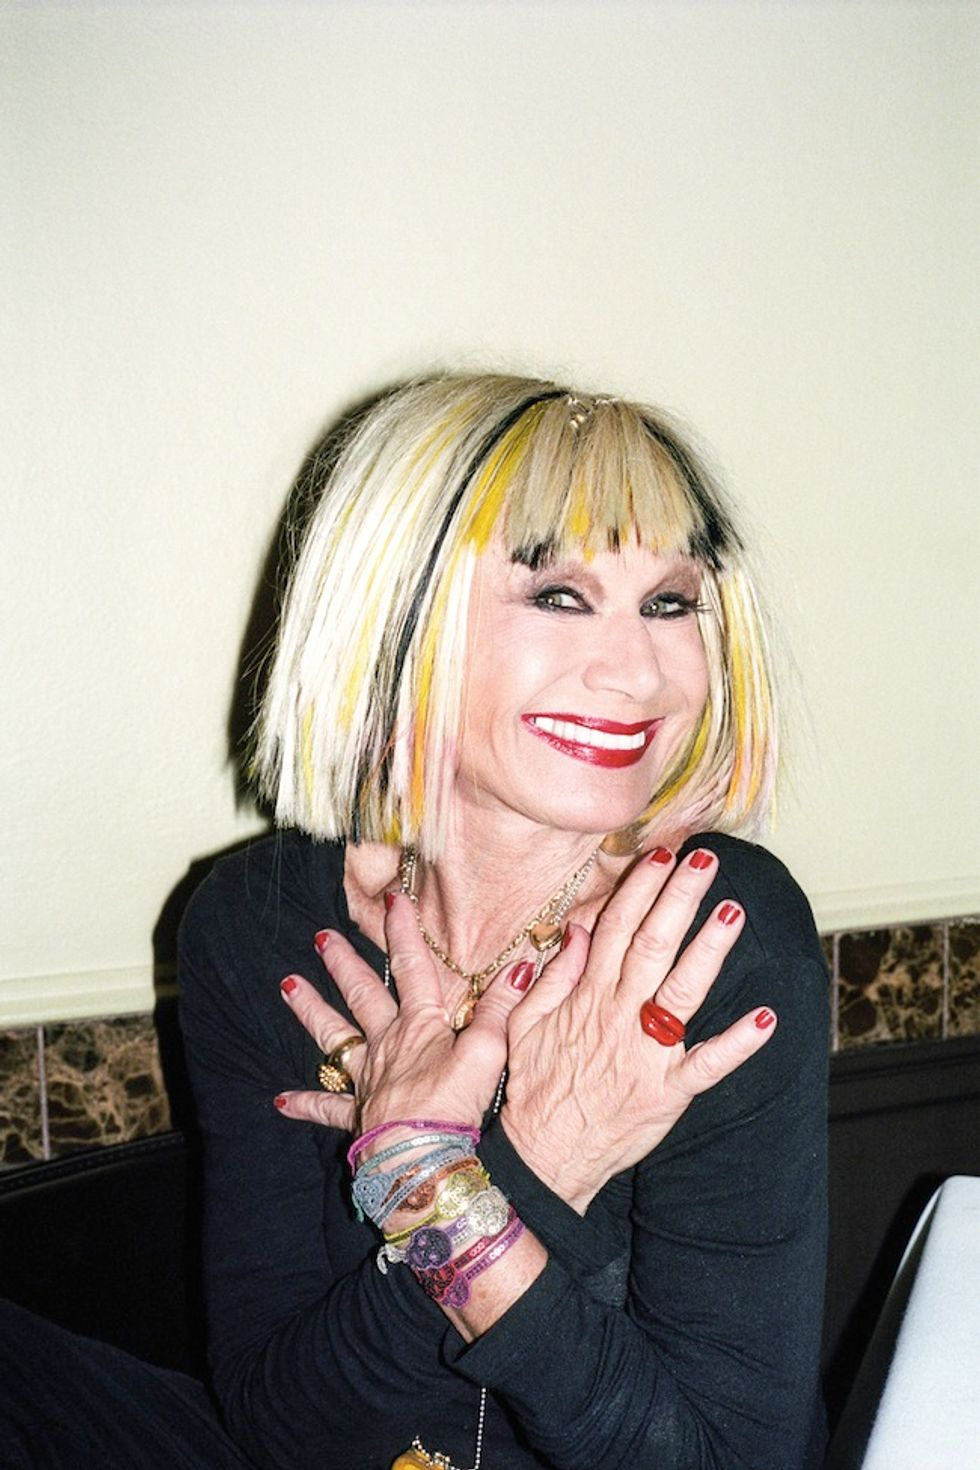 Betsey Johnson On 50 Years In Fashion, Malibu Men and That Time Prince Came By Her Store